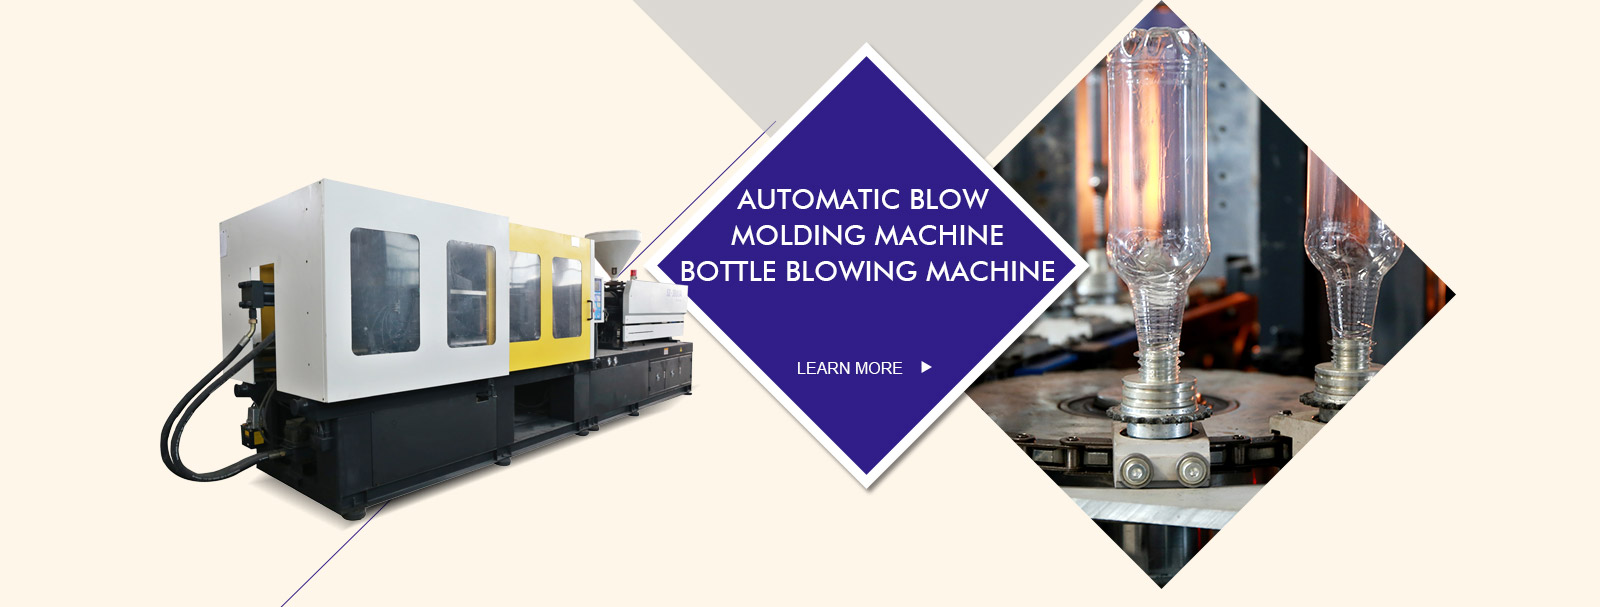 modern-pack bottle blowing machine